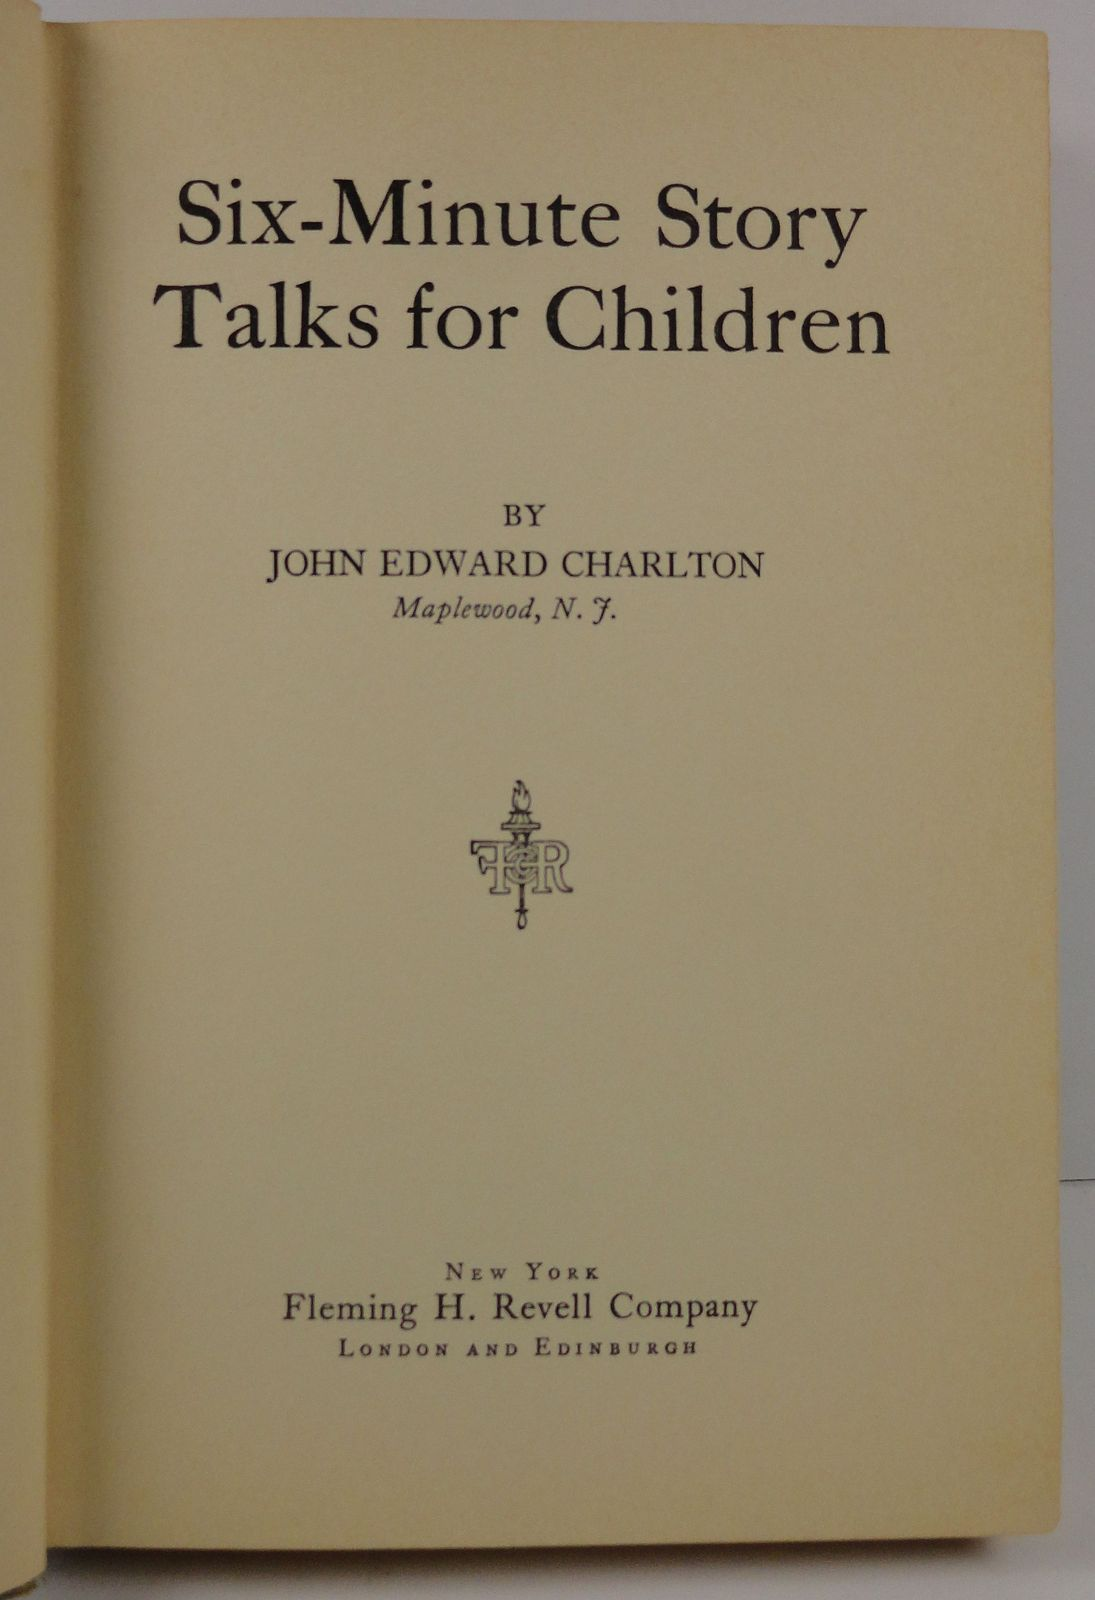 Six Minute Story Talks for Children by John Edward Charlton